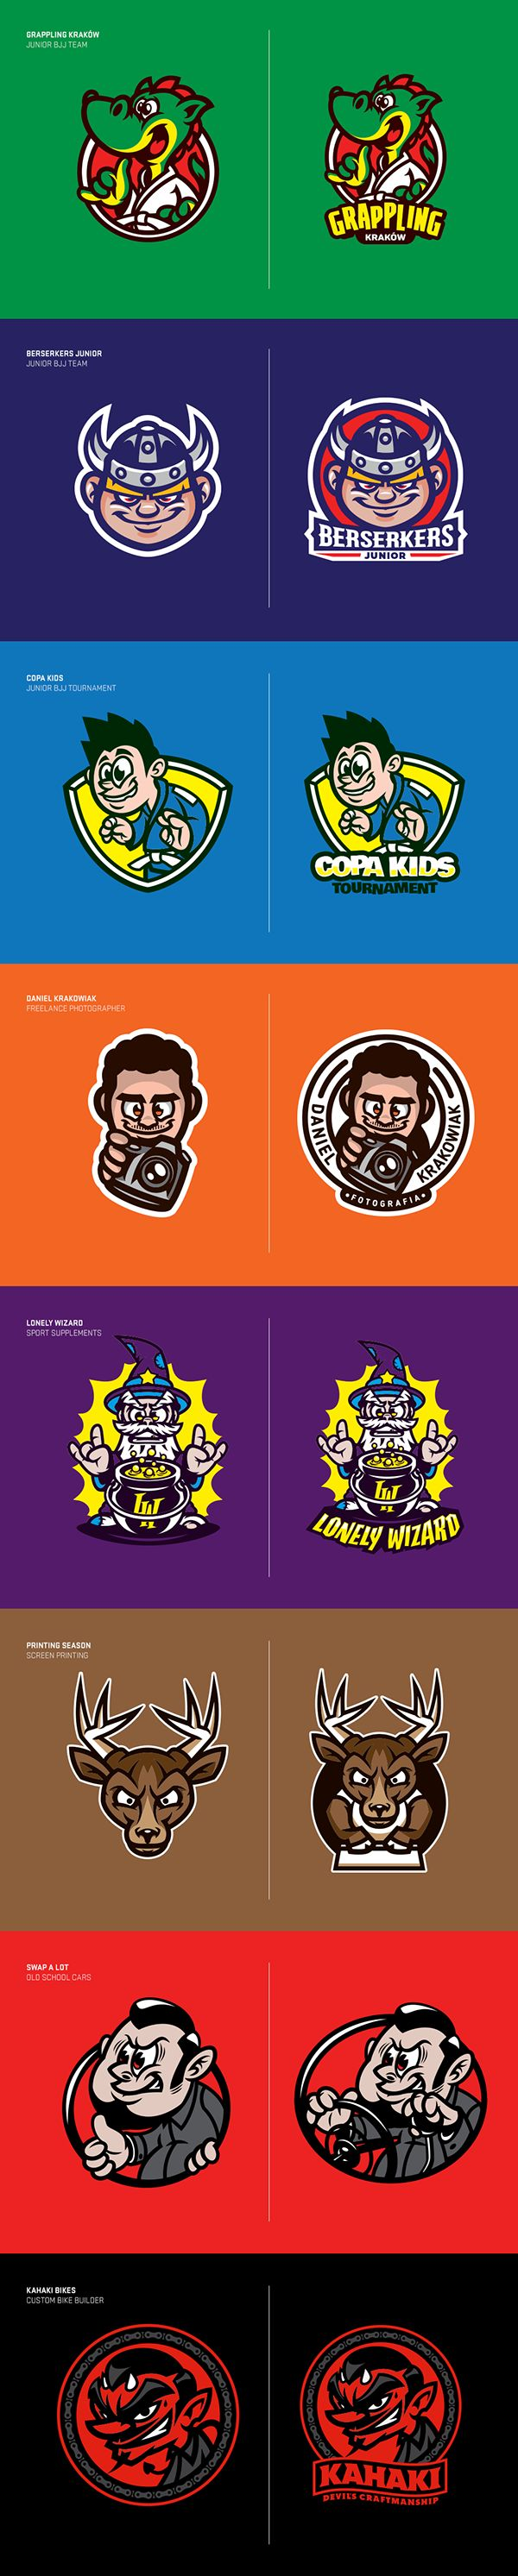 Cartoon Logos Pack on Character Design Served